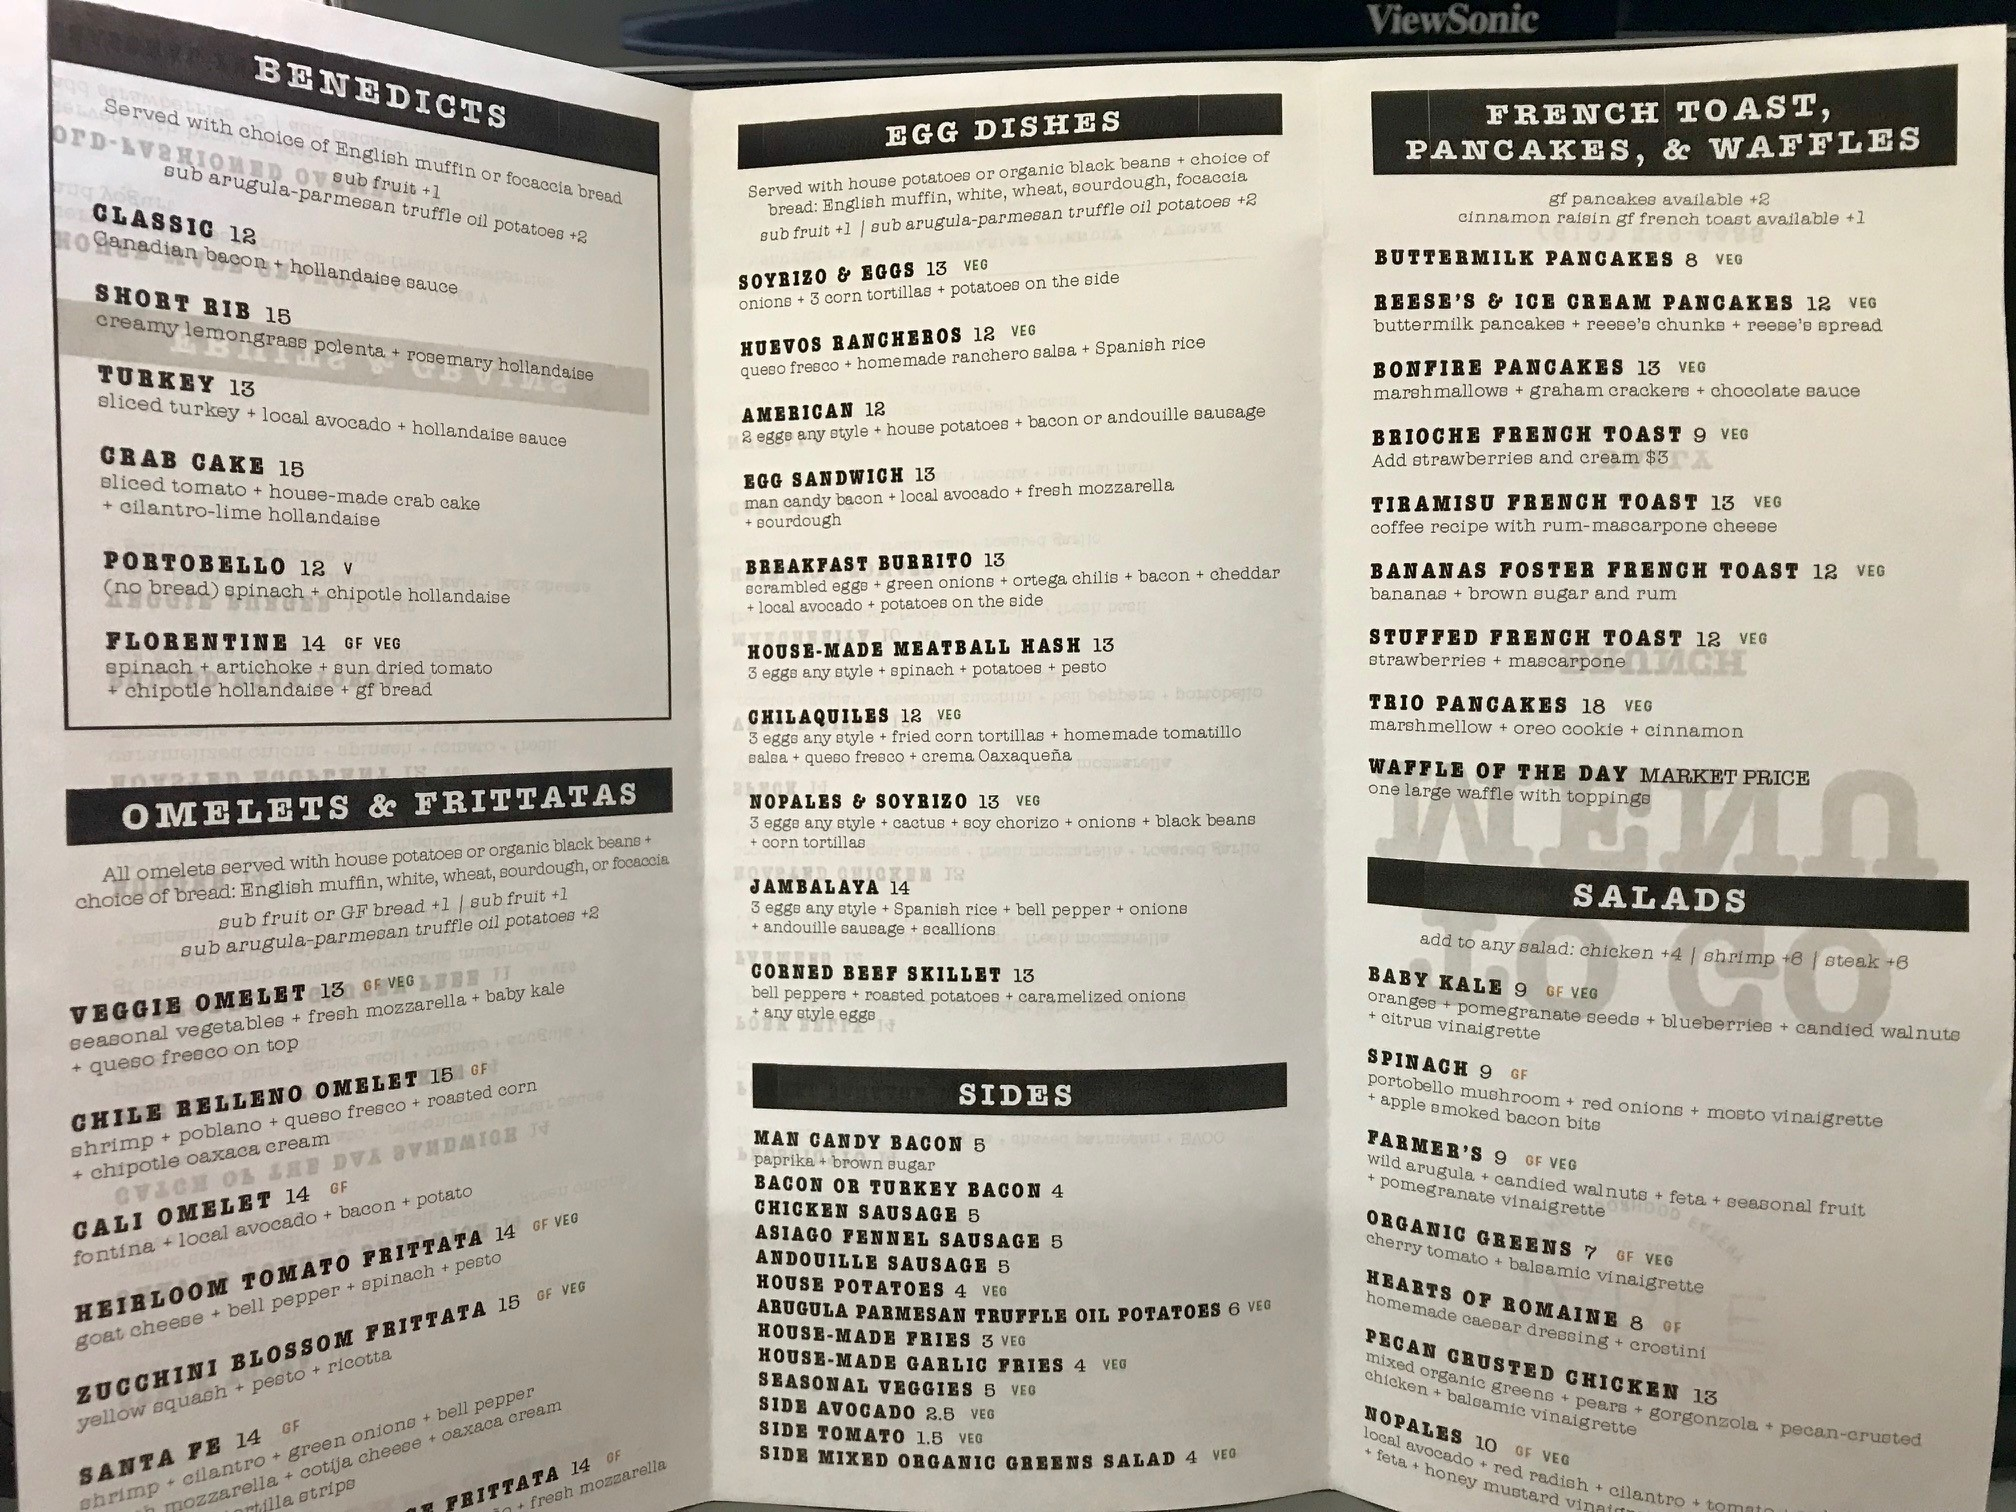 To-Go Brunch Menu